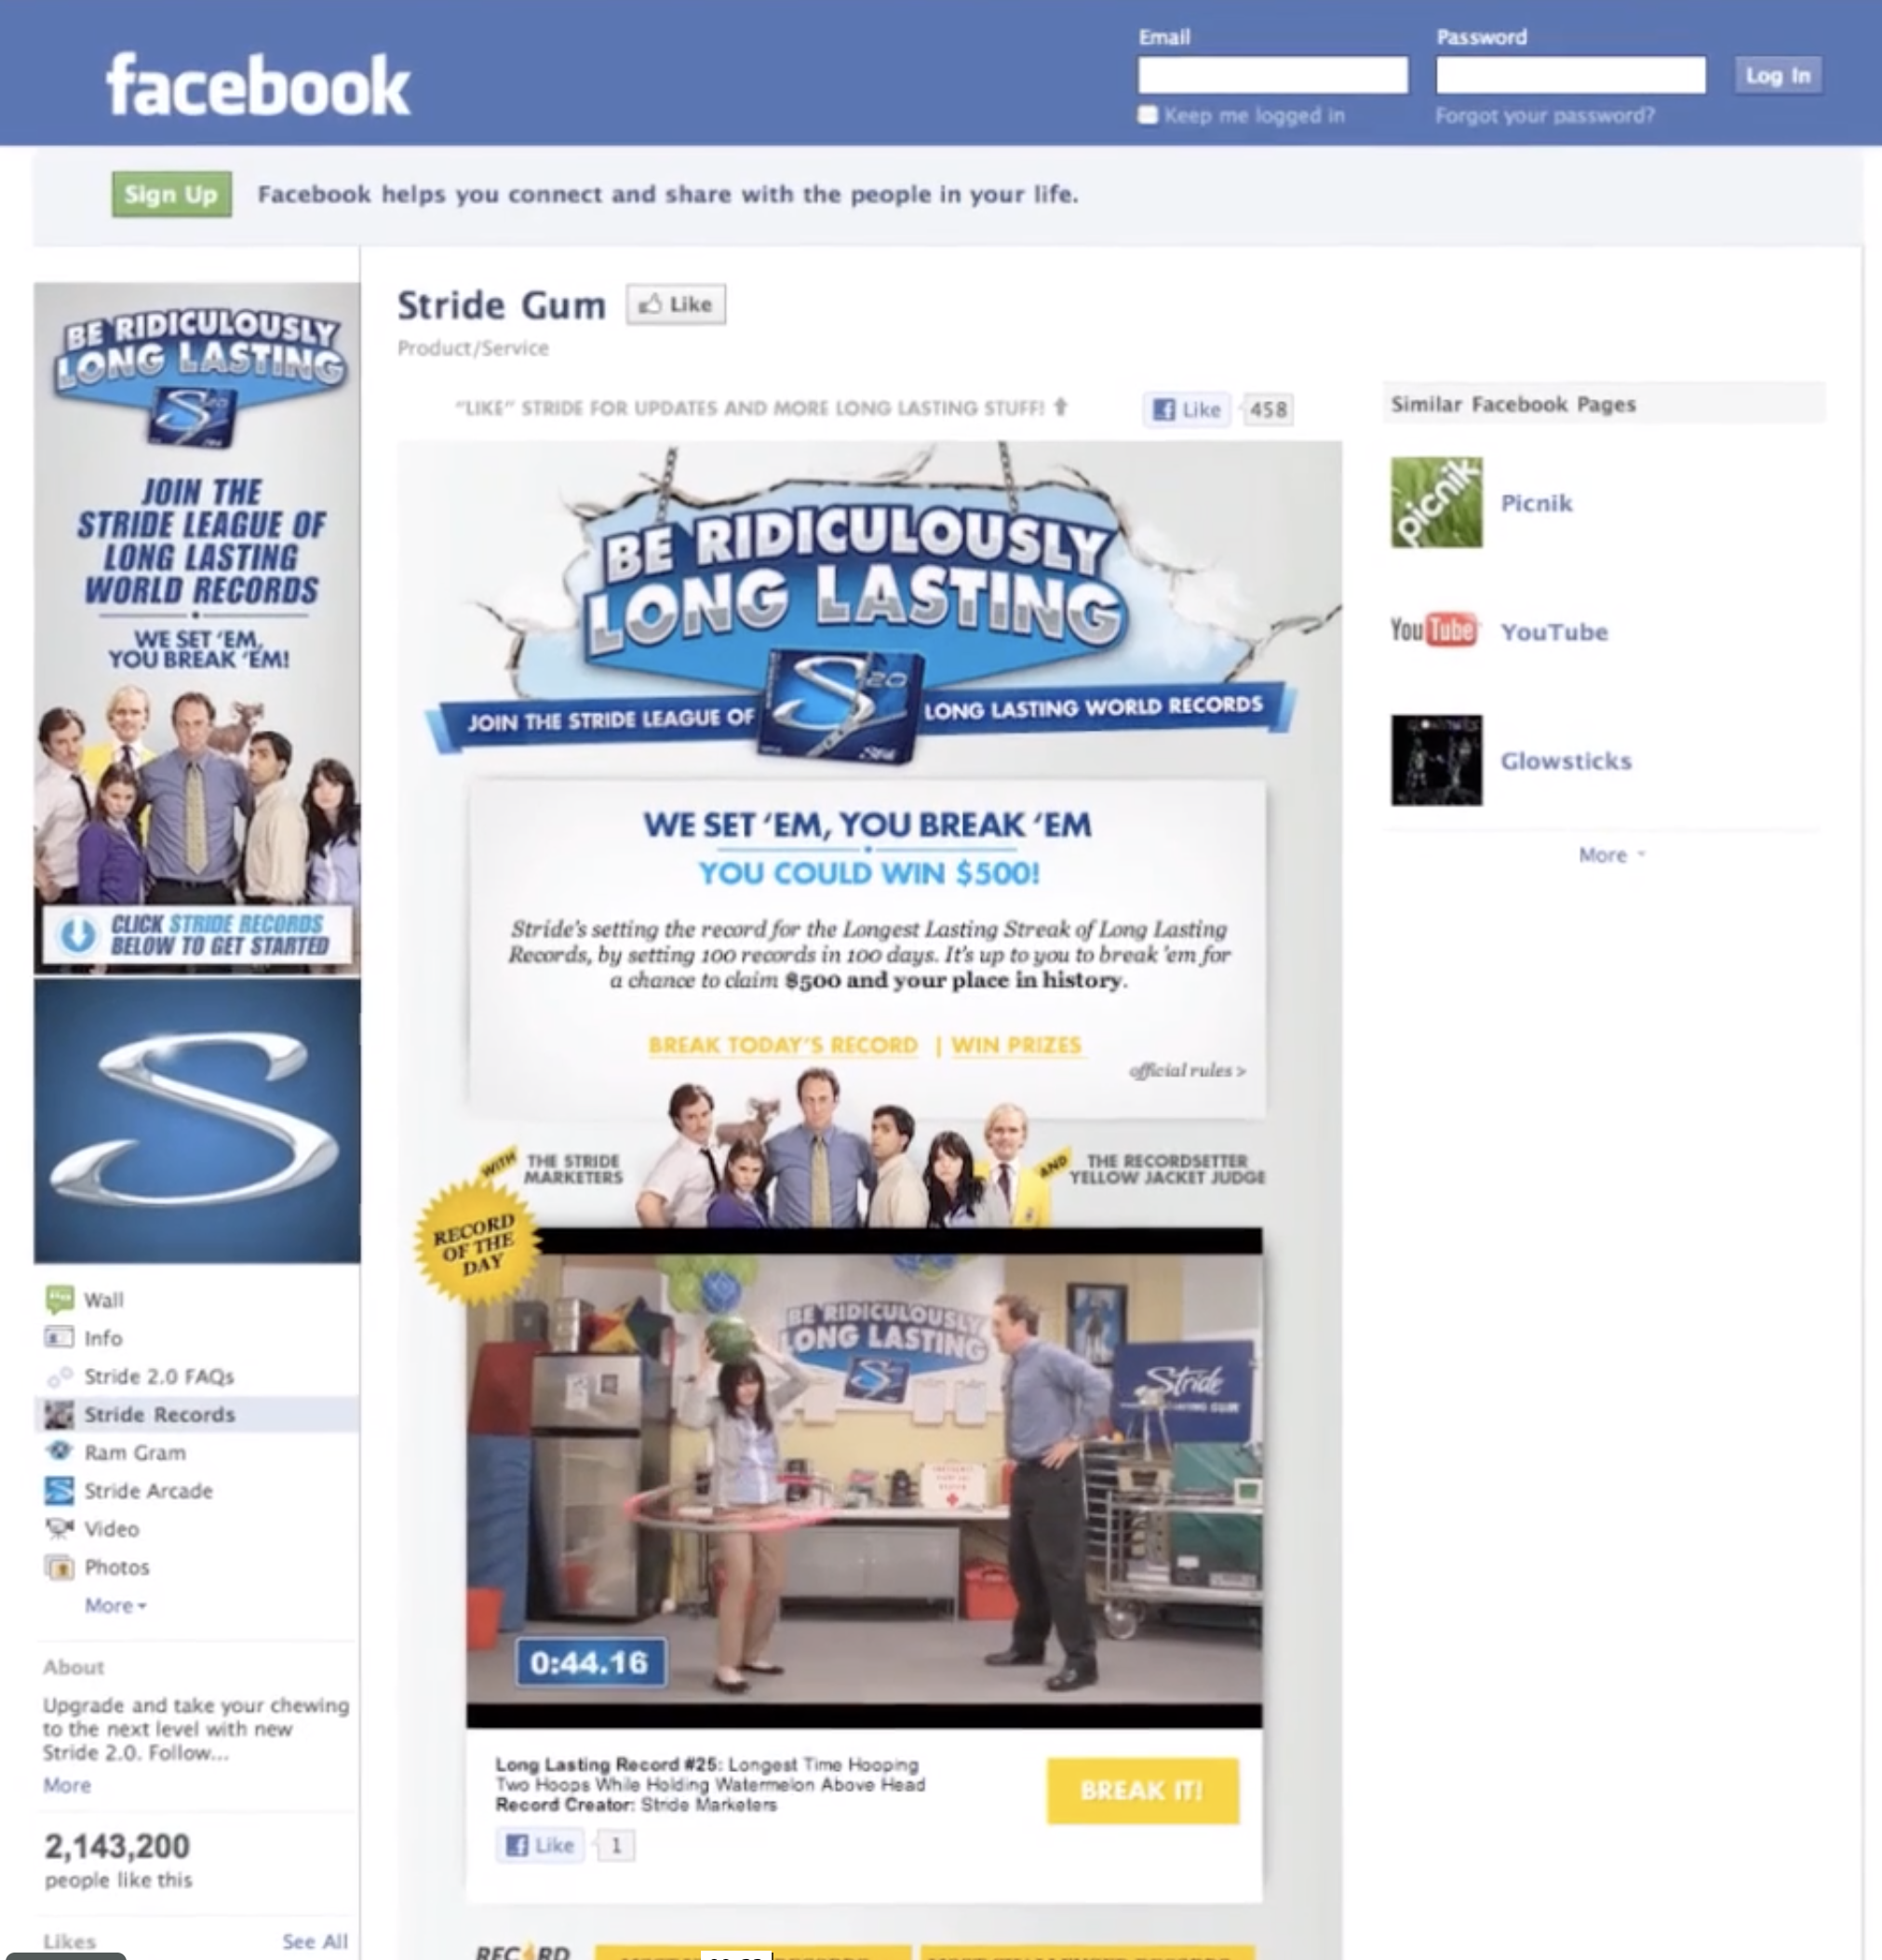 Challenges were issued daily across Facebook, Youtube, and RecordSetter.com to the potential record breakers.